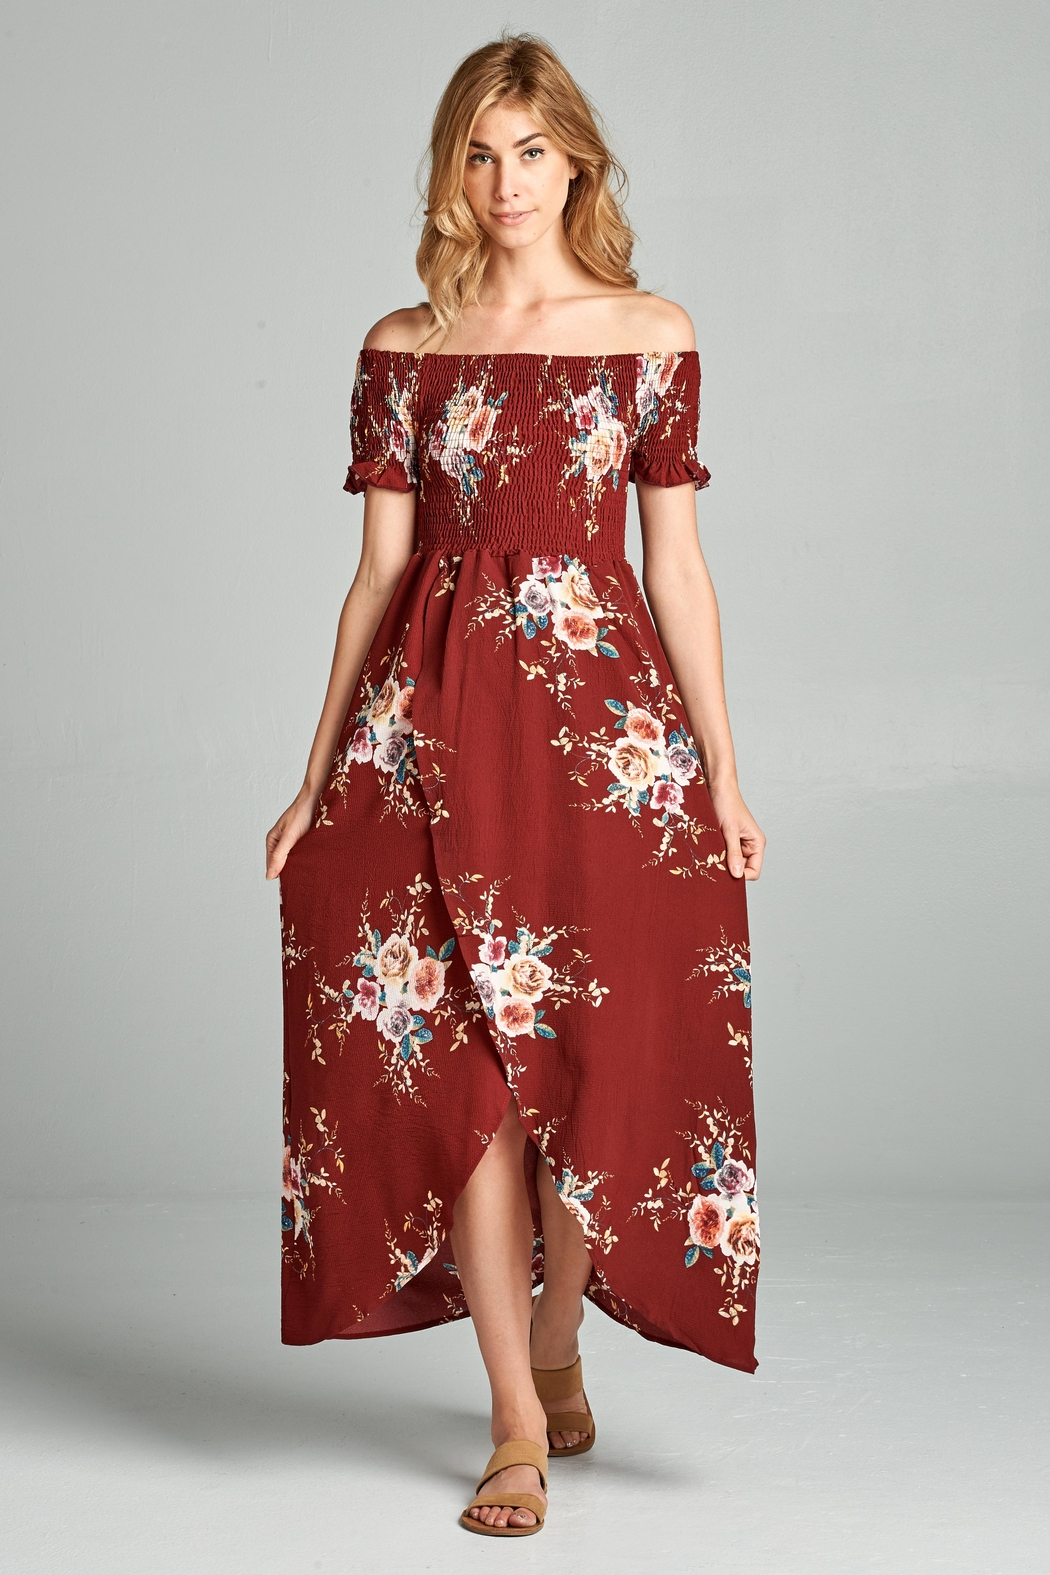 cafc0b4ead Racine Floral Off-Shoulder Maxi-Dress from California by Racine Love ...